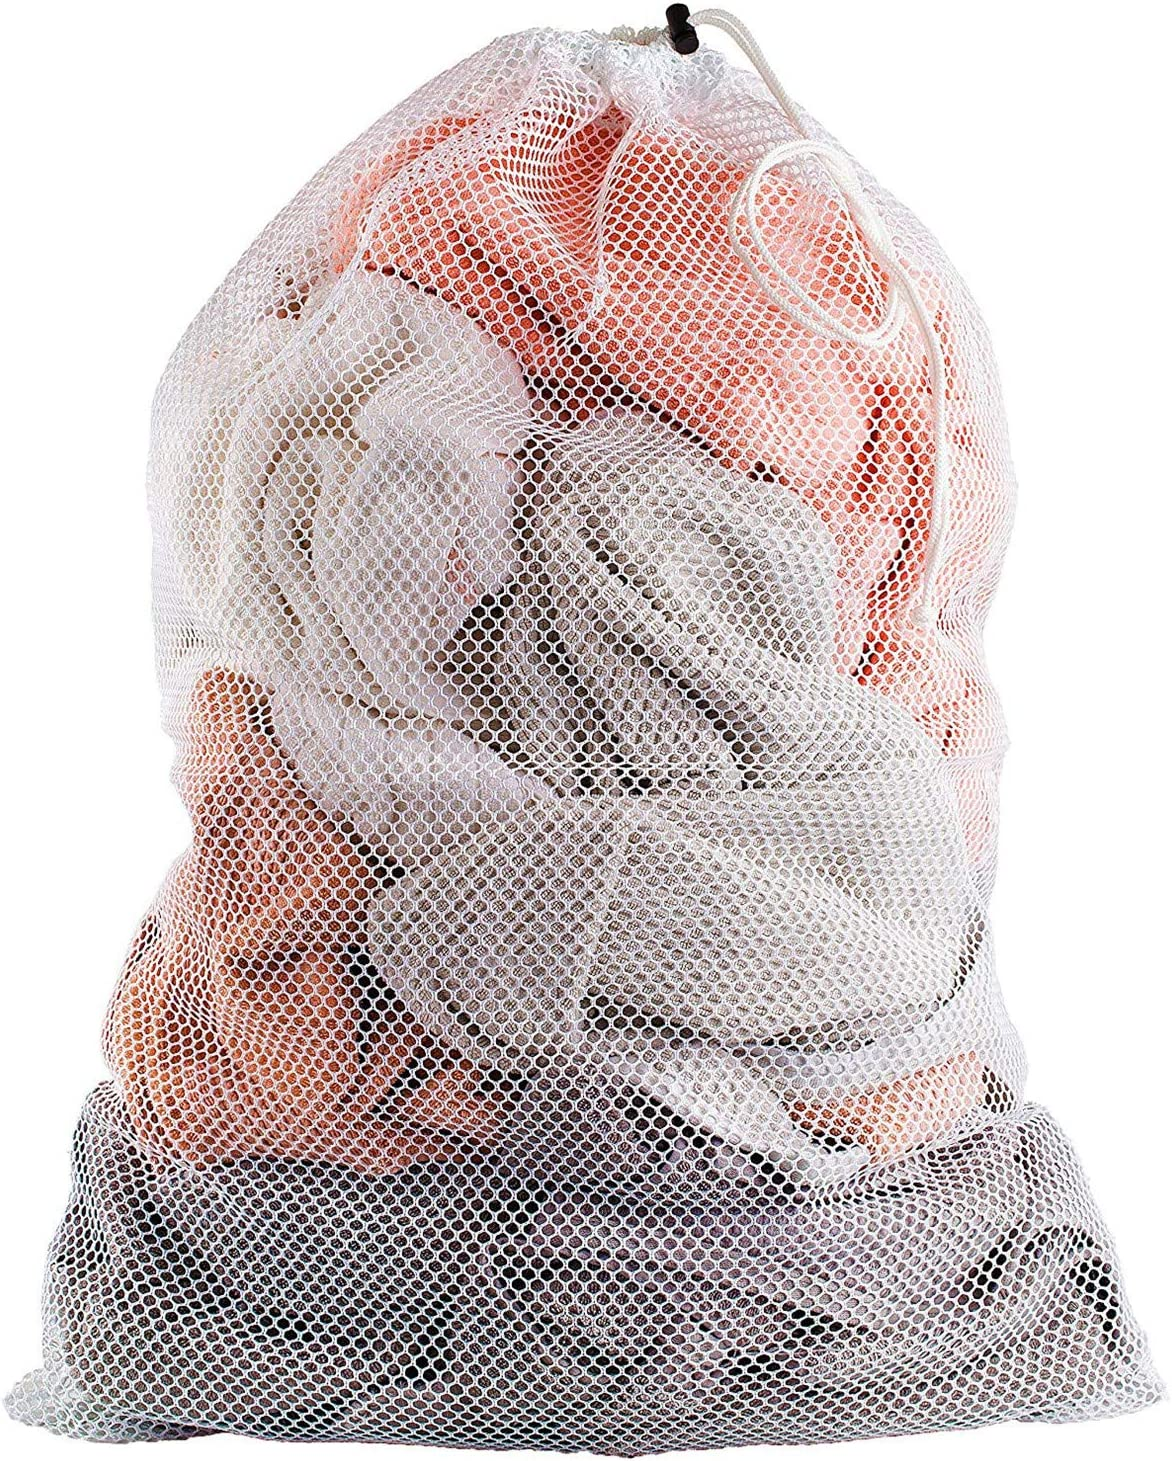 """LERORO 3 Pcs Commercial Mesh Laundry Bag - 20"""" x 28"""" - Sturdy White Mesh Material with Drawstring Closure. Ideal Machine Washable Mesh Laundry Bag for Factories, College, Dorm and Apartment Dwellers"""